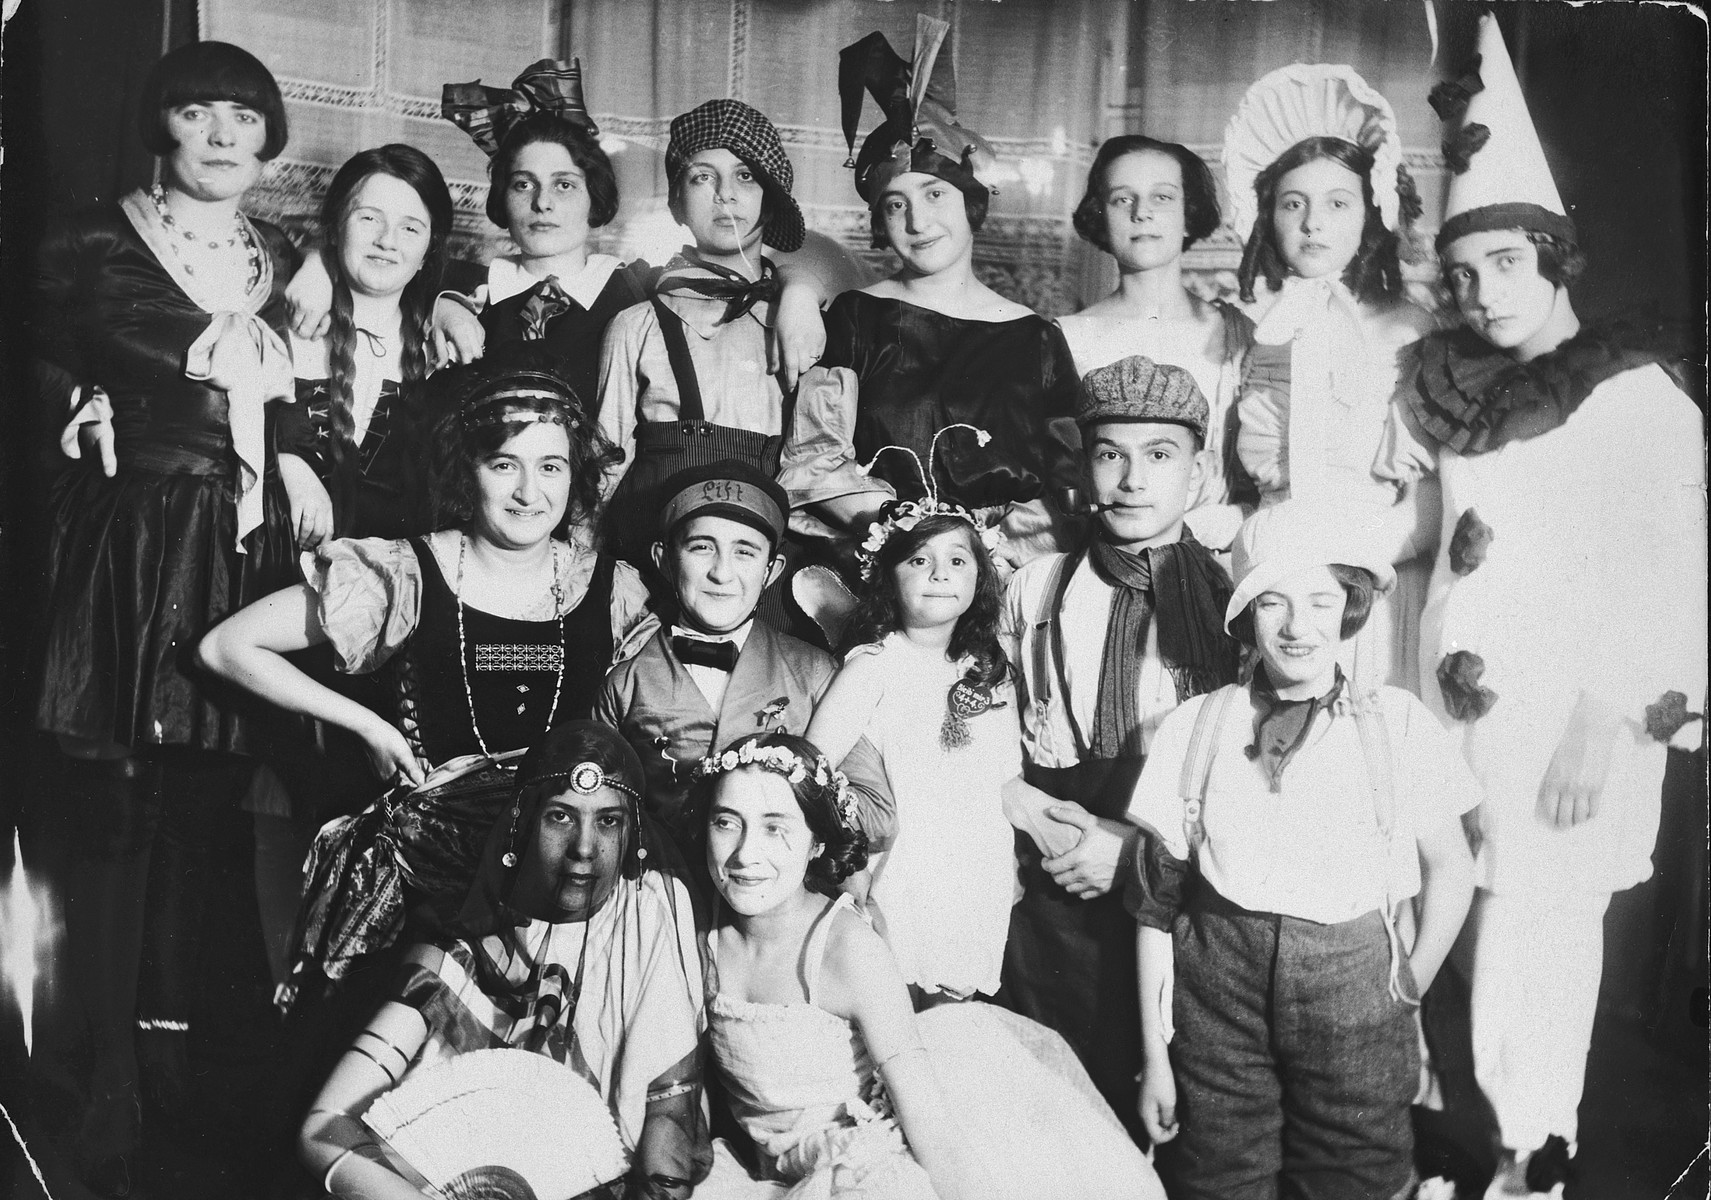 A large group of German and Jewish friends pose together during a costume party.  Pictured in the center is Irene Spicker next to her older brother Werner.